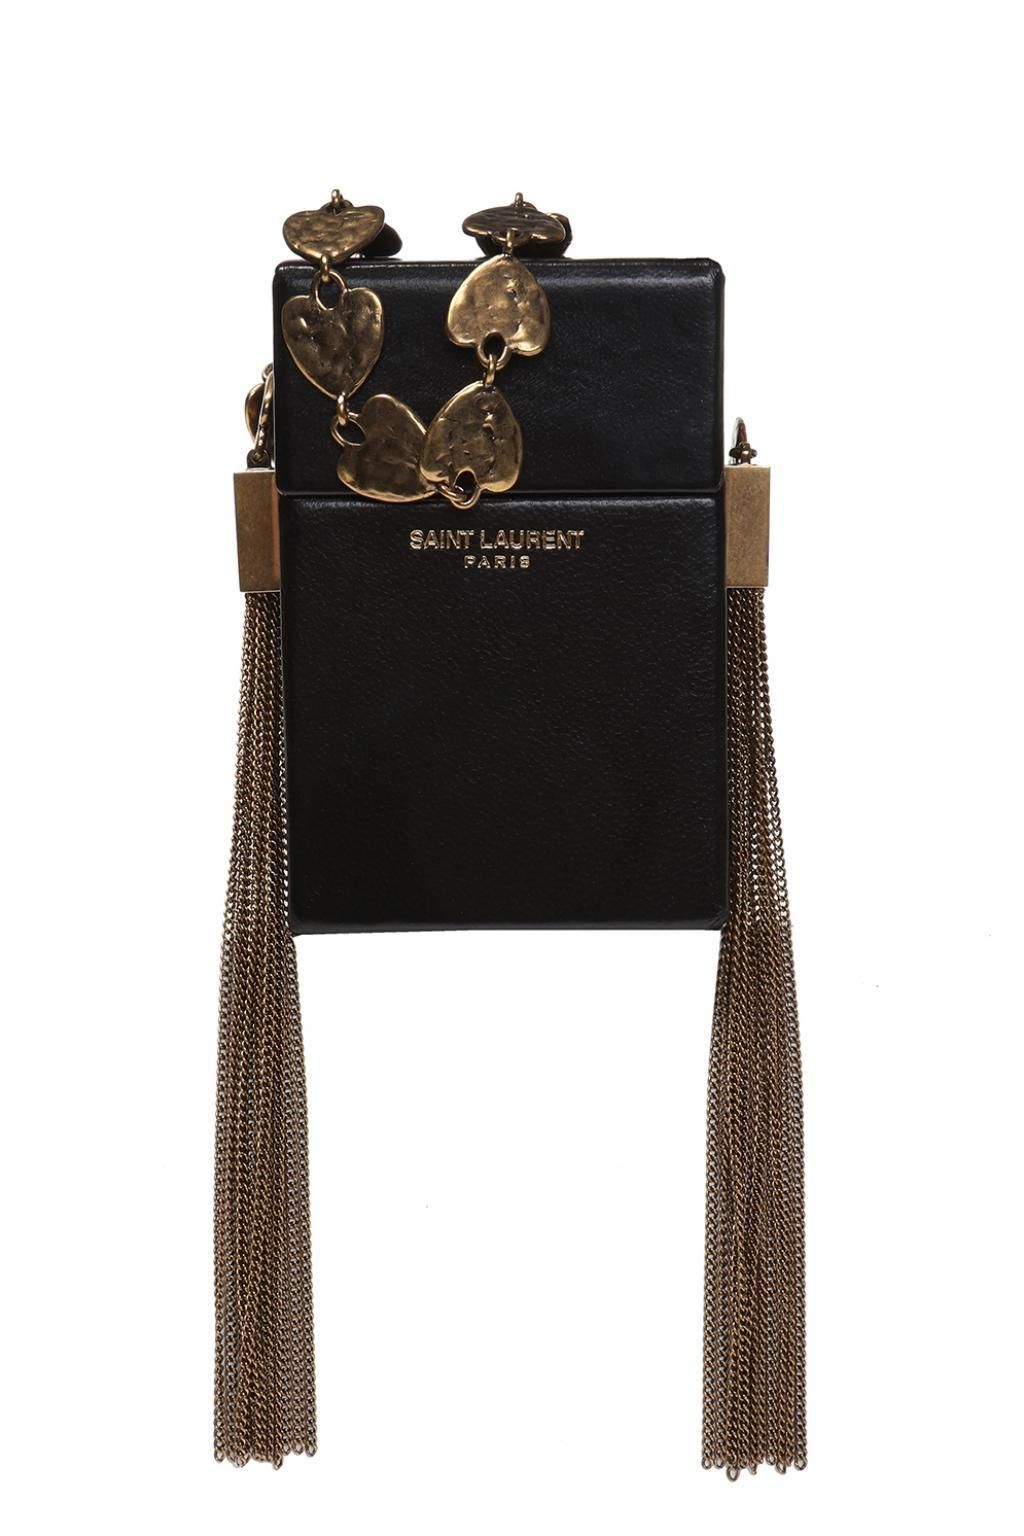 8686baaa929 Cigarette Case - Black - Saint Laurent Shoulder bags Saint Laurent - Black  Cigarette Case -